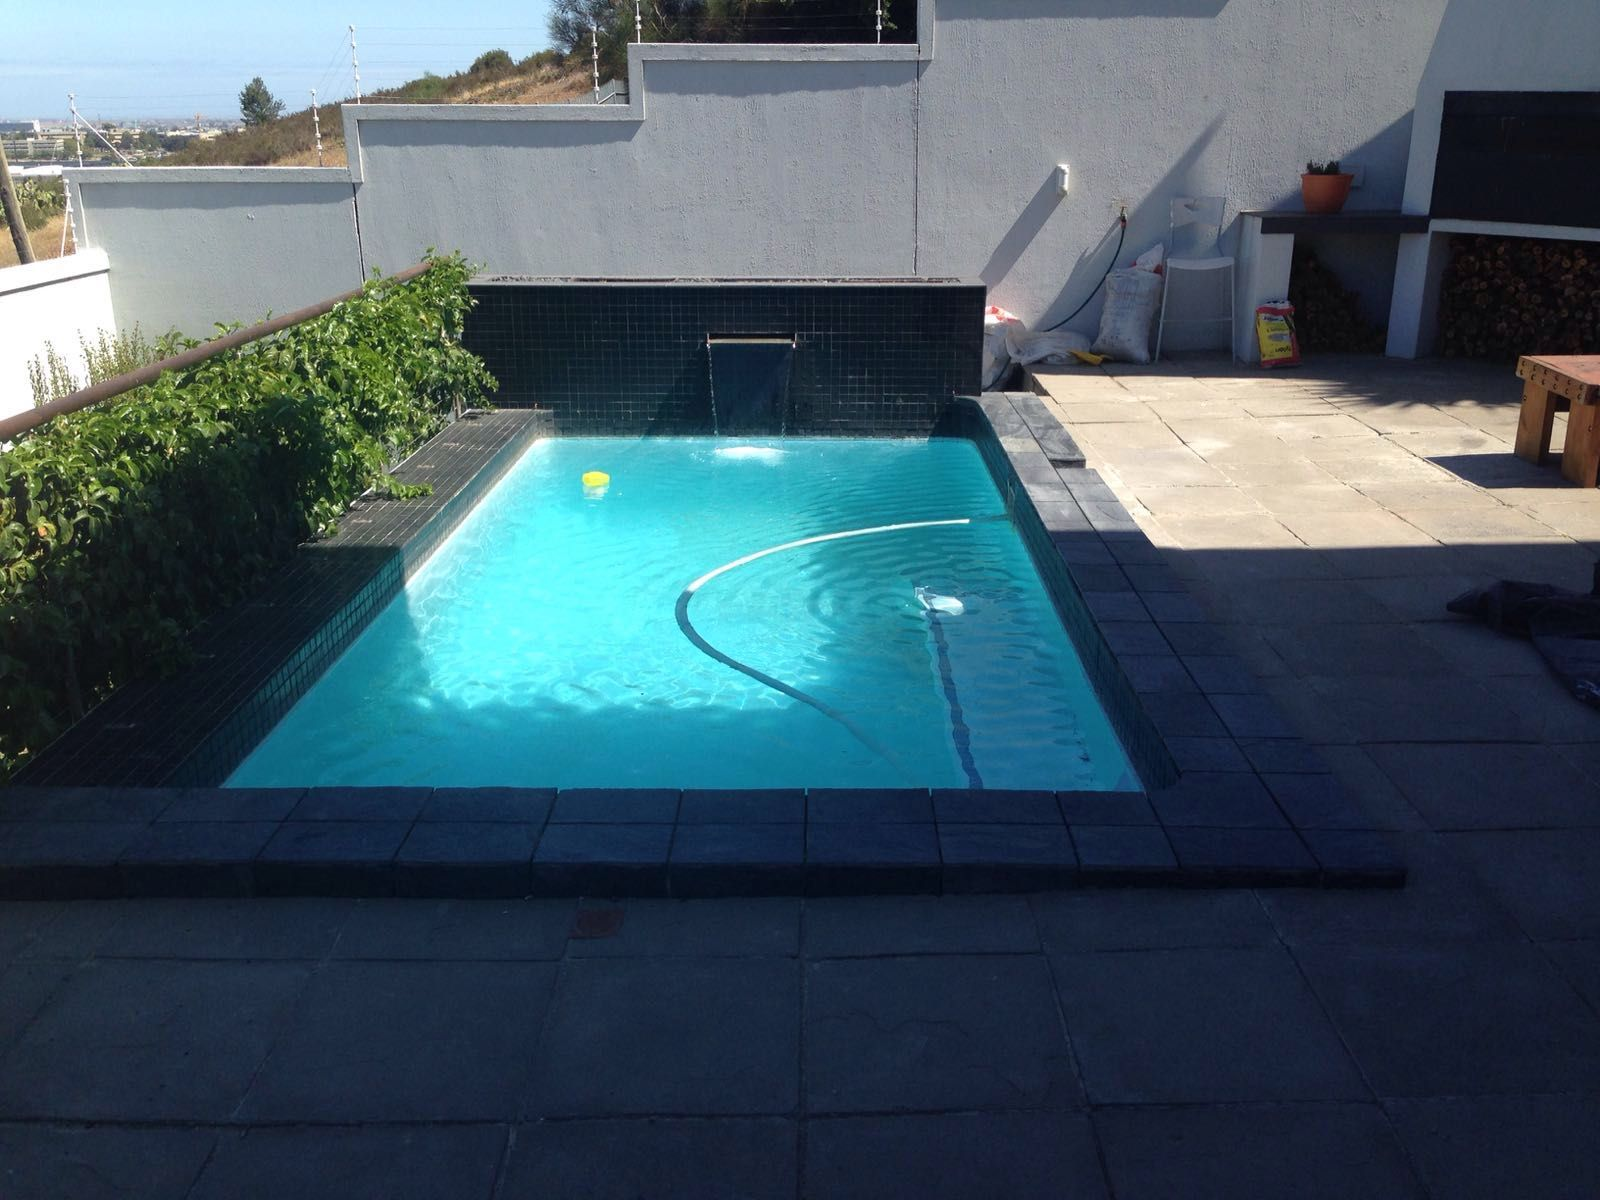 Gfk Pool Luna Pool Coping Re Tiled With Black Slate Tiles And Black Grout